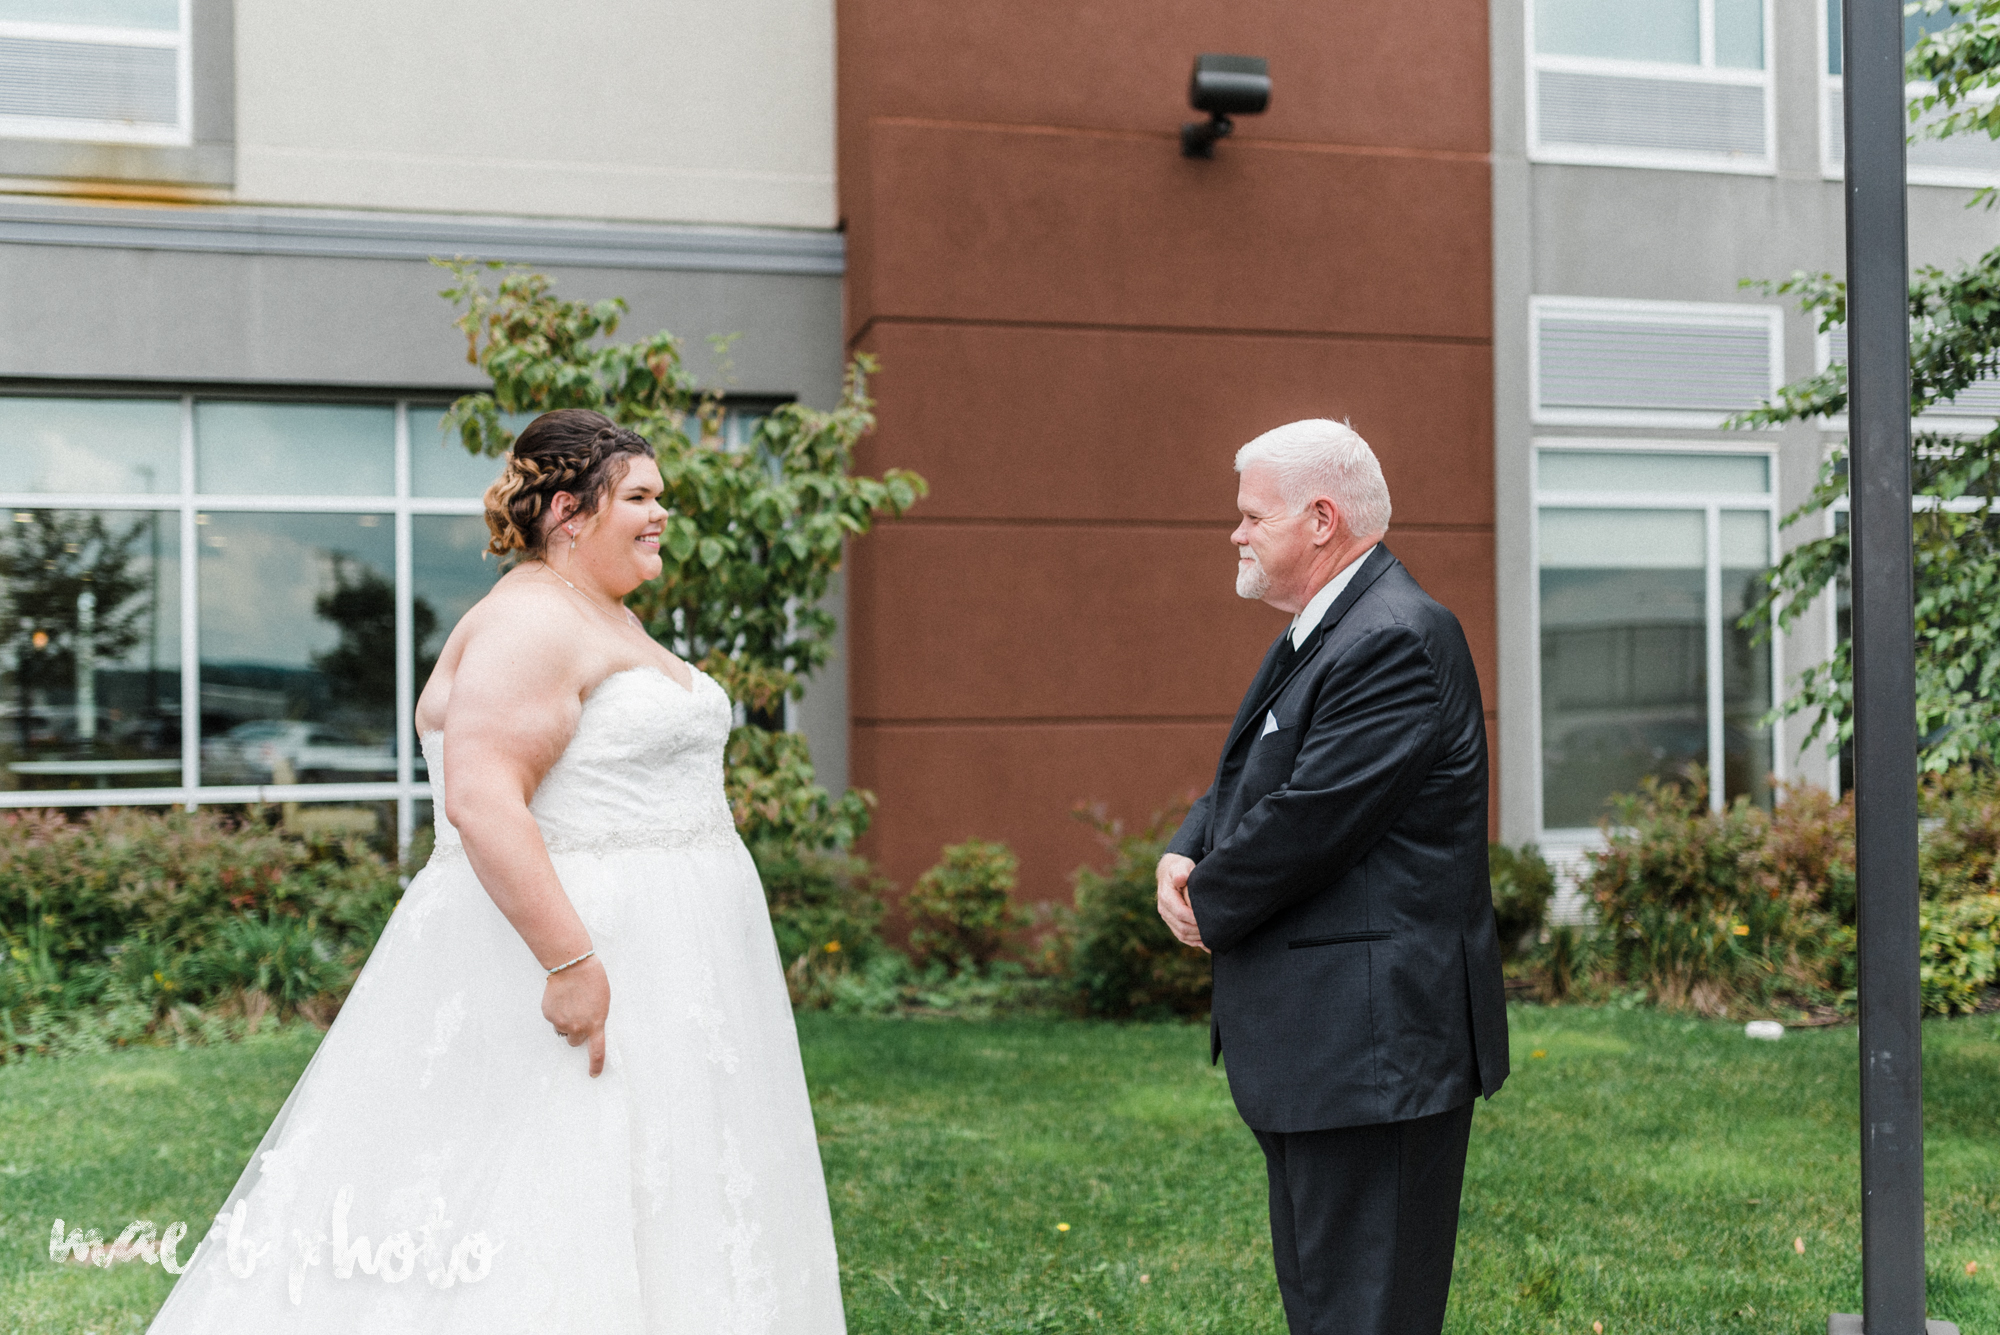 Kristina and ryan's personal vintage glam fall wedding at disalvo's station restaurant and the arnold palmer latrobe country club in latrobe, pa photographed by youngstown wedding photographer mae b photo-22.jpg